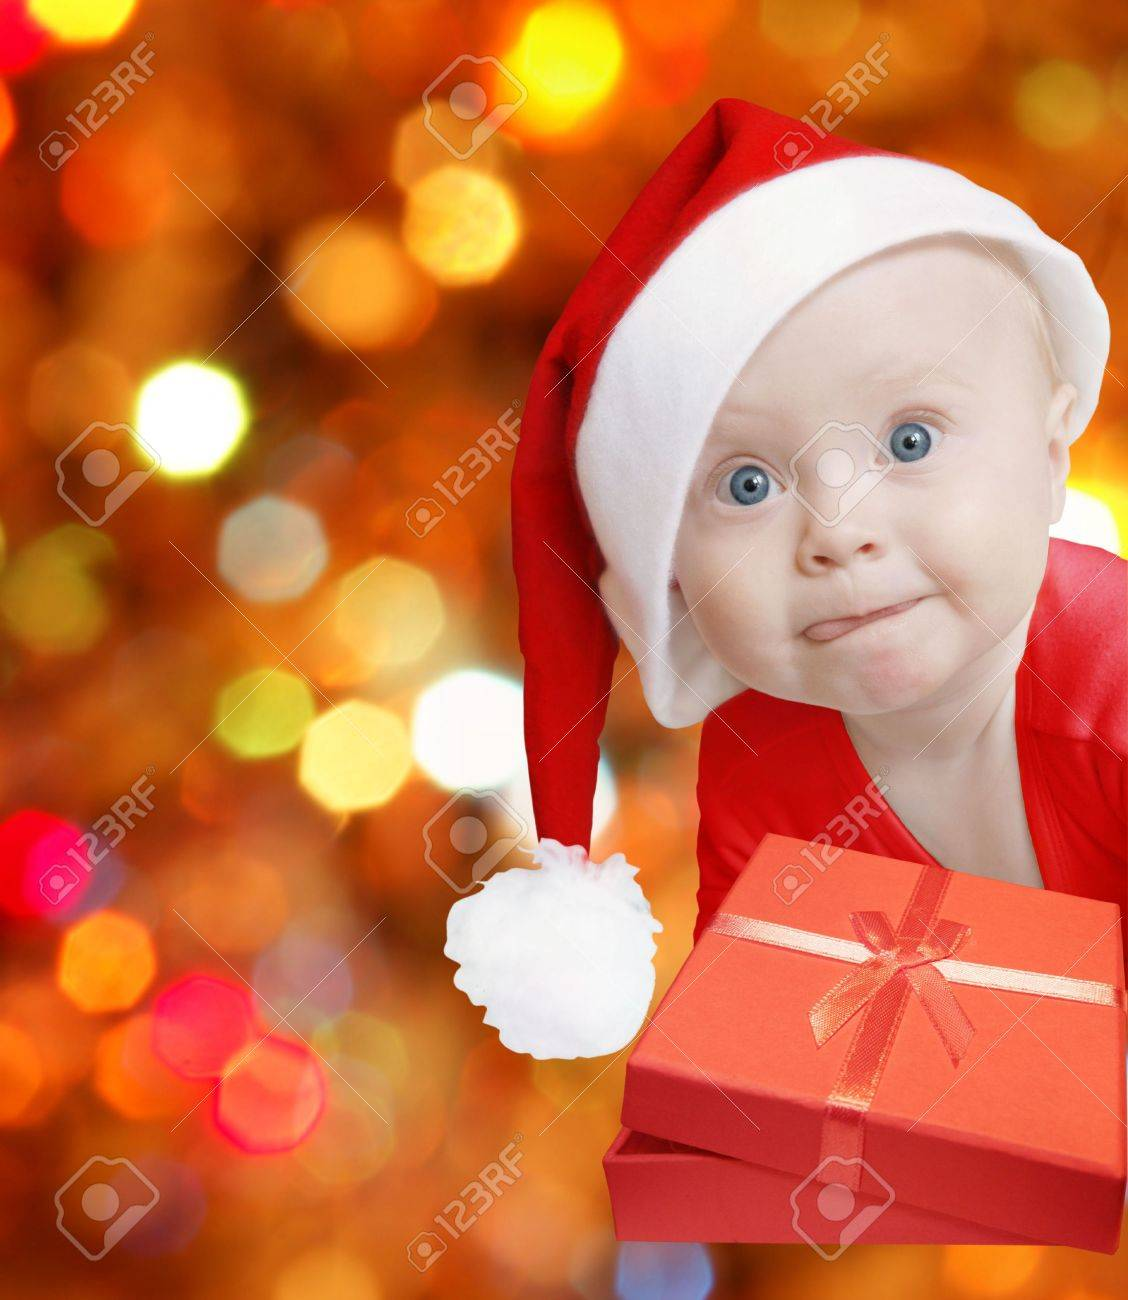 funny baby in Santa hat with present box on bright festive background, space for text Stock Photo - 3868508